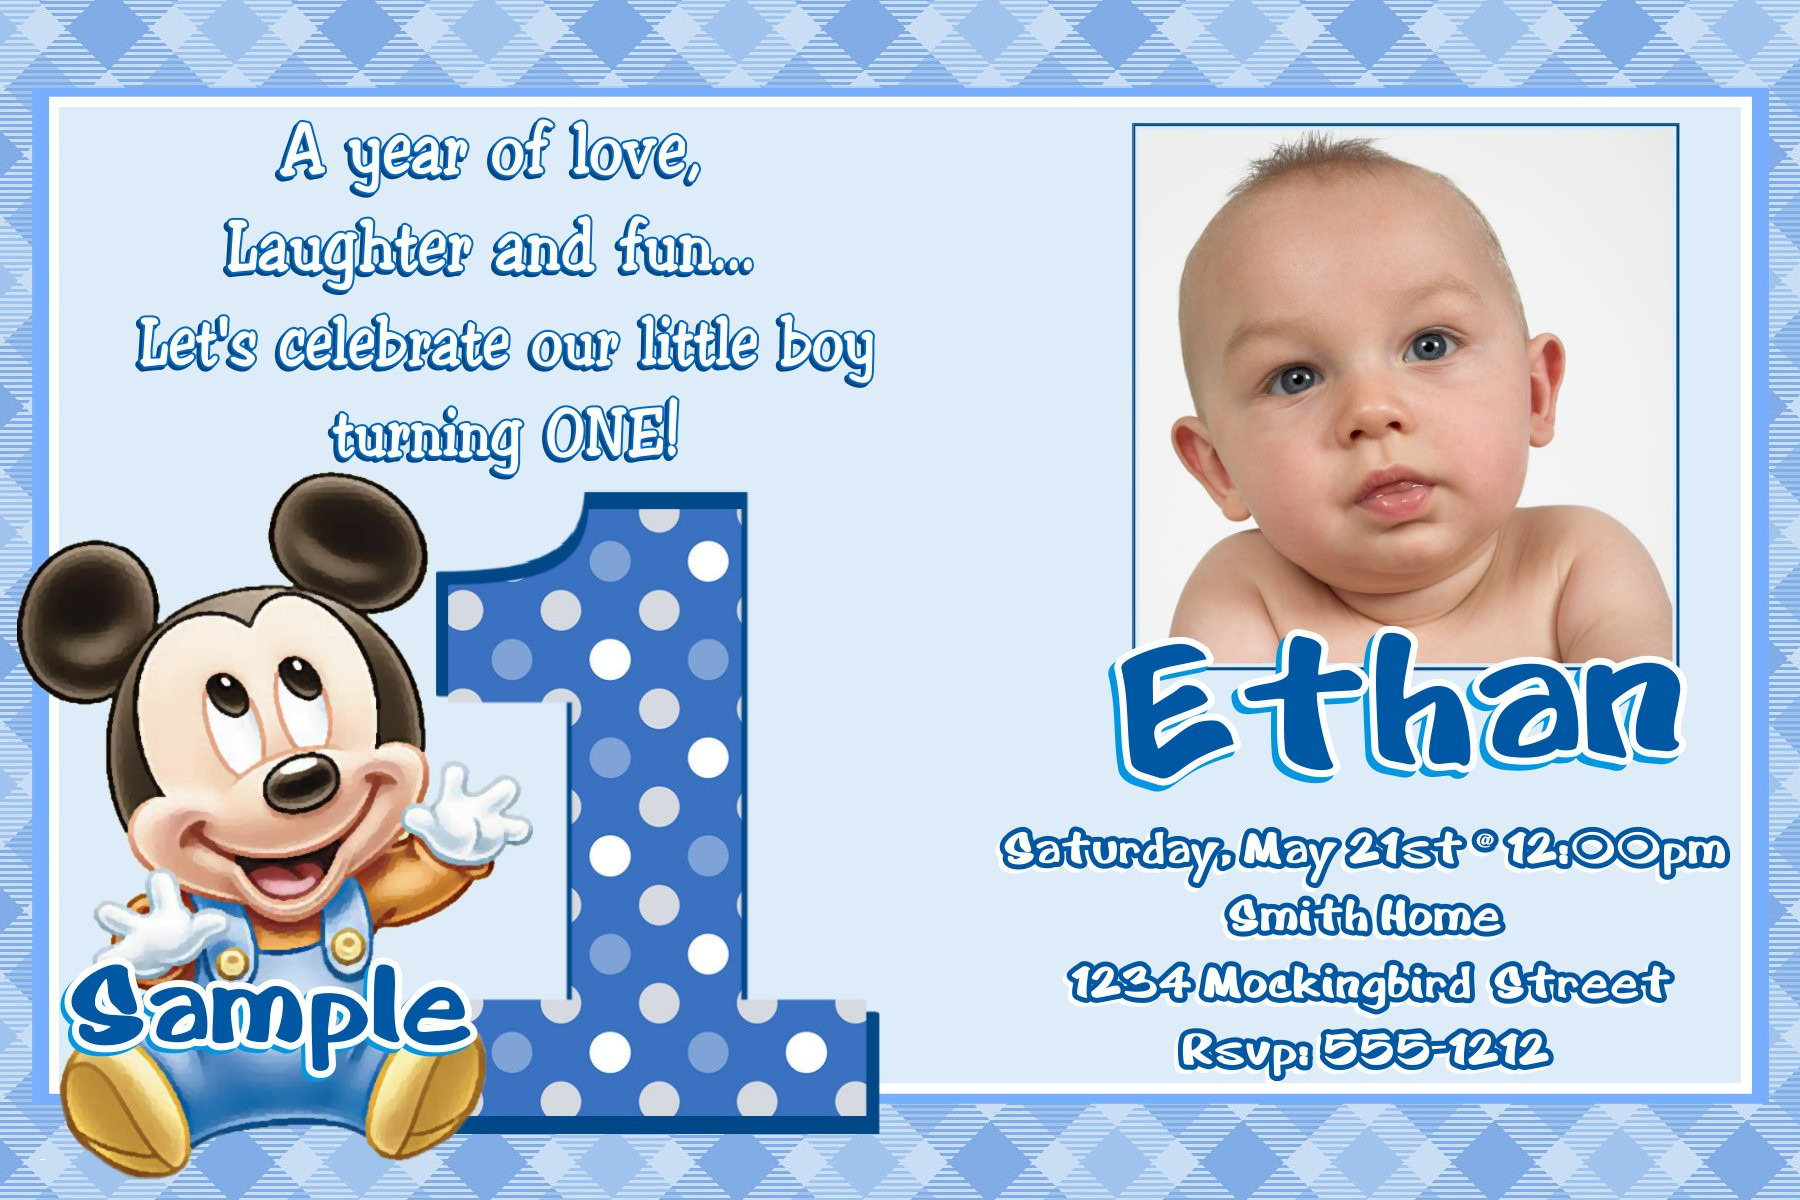 baby 1st birthday greeting cards ; 1st-birthday-greeting-cards-for-baby-boy-luxury-invitation-templates-archives-page-39-of-102-enlarging-co-of-1st-birthday-greeting-cards-for-baby-boy